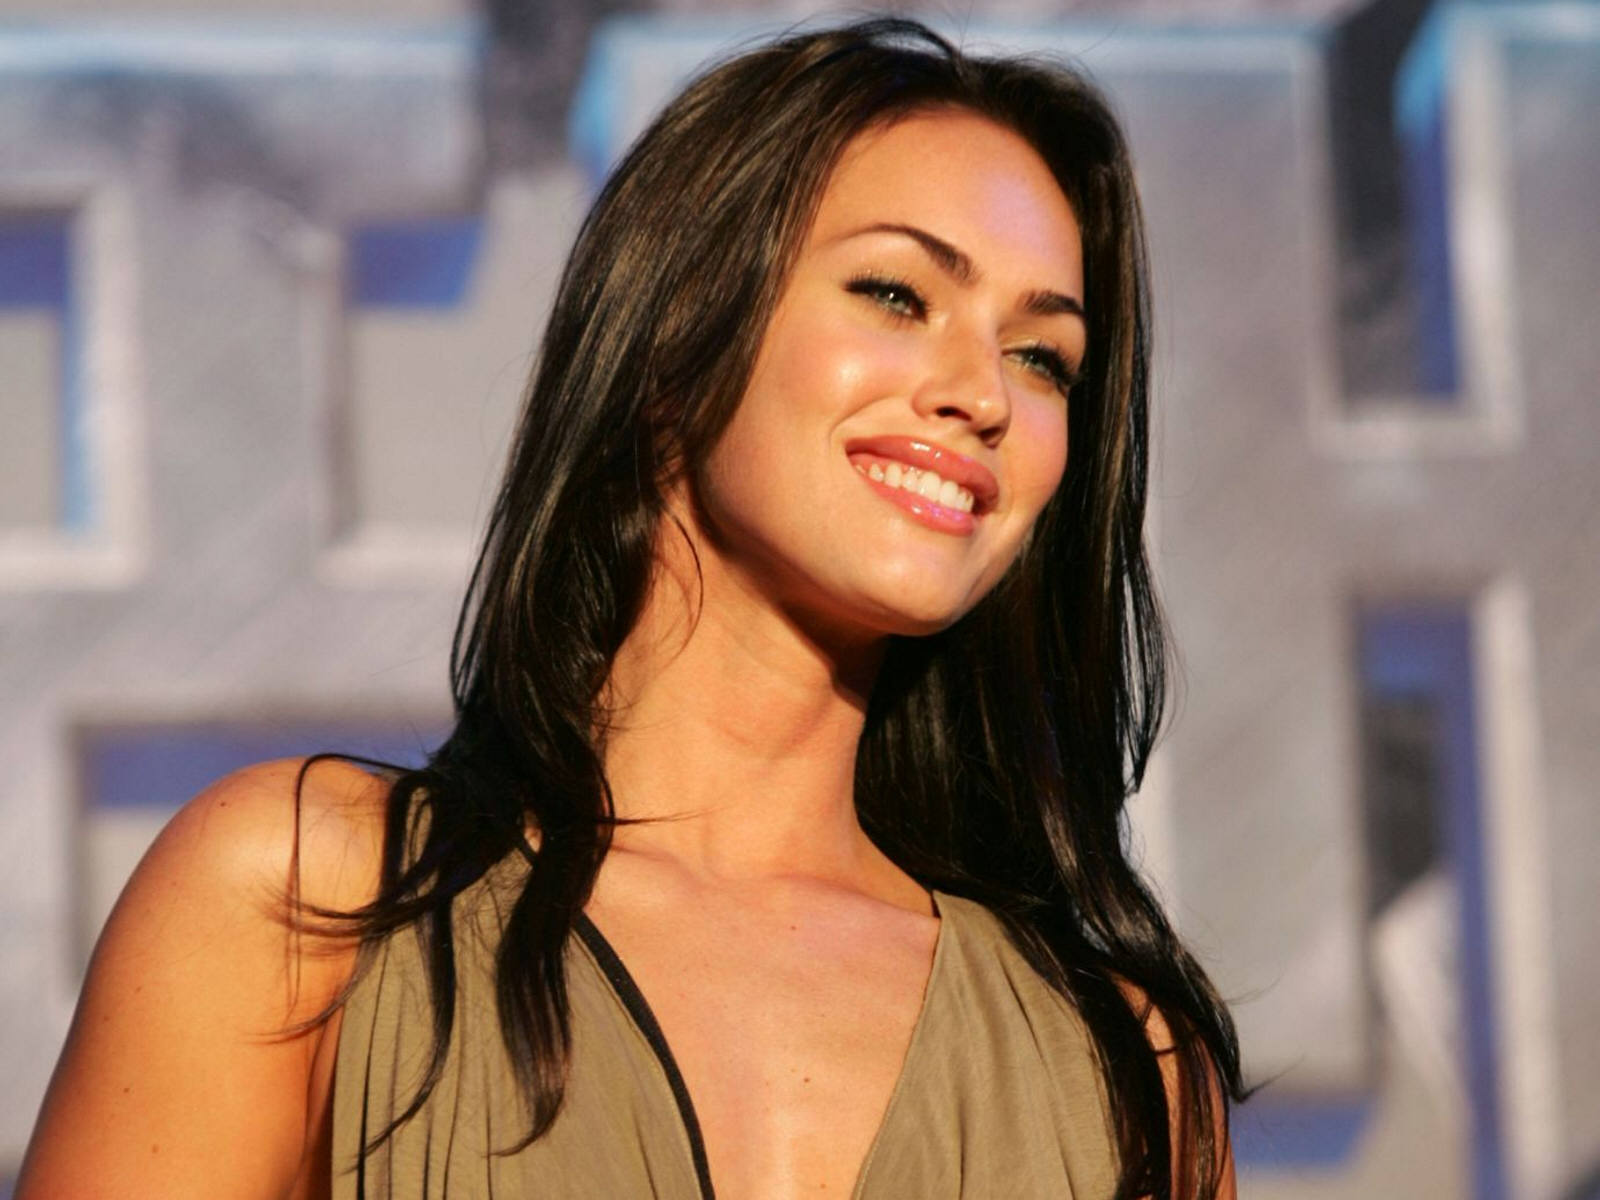 Megan Fox Hd Wallpaper Latest Hd Wallpapers 1600x1200